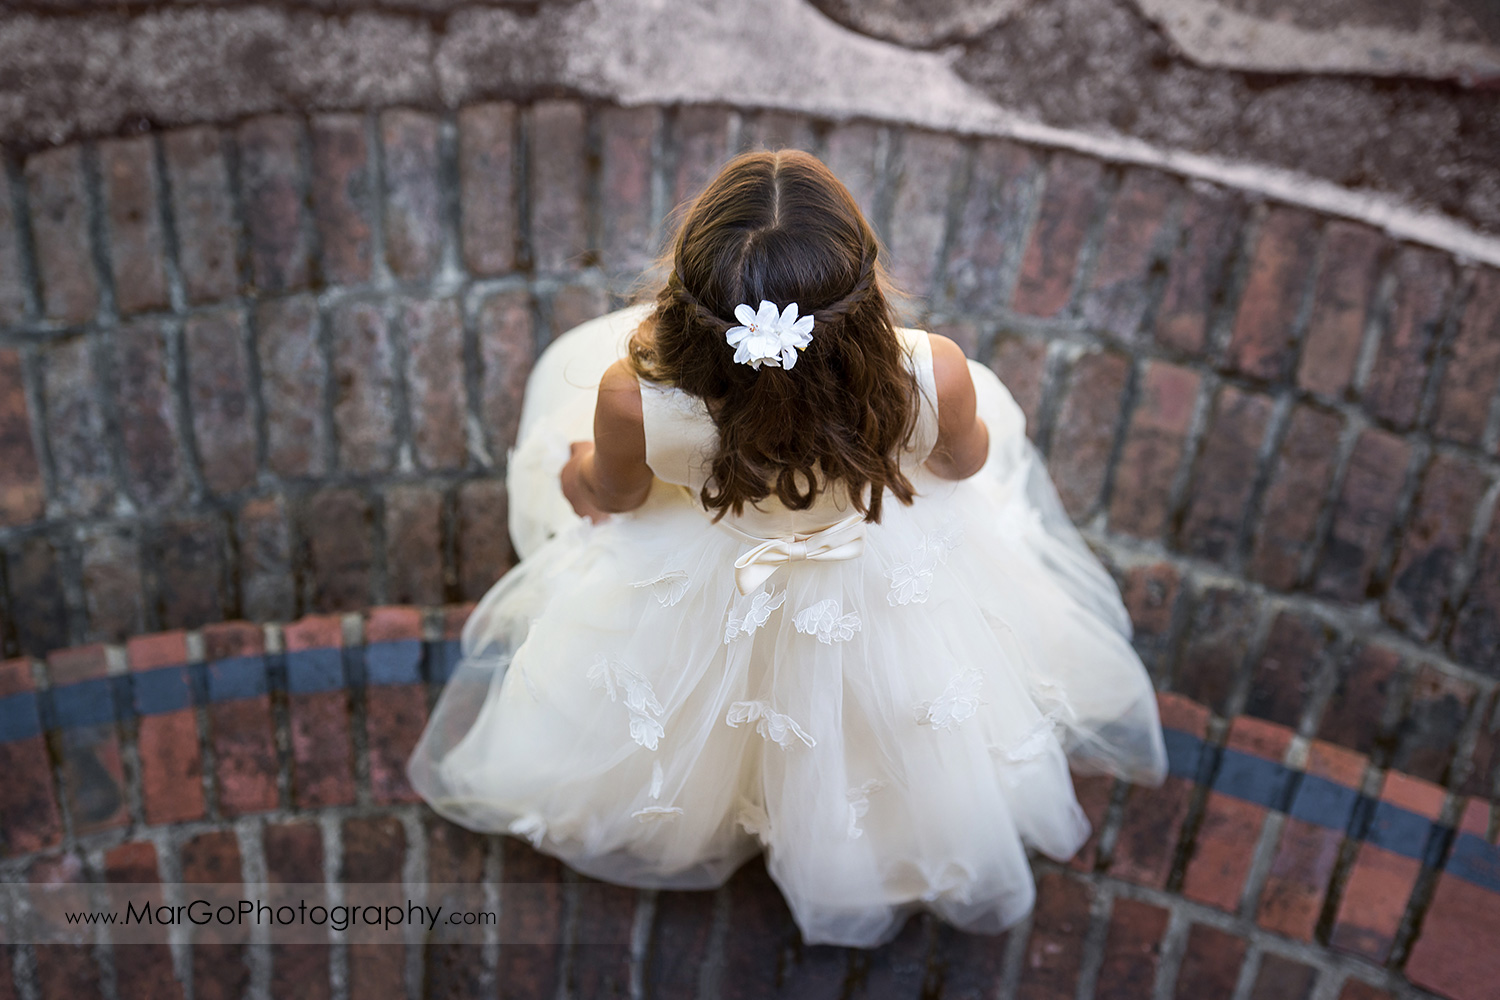 high angle of first communion girl in white dress showing back of the dress at Cafe Wisteria in Menlo Park